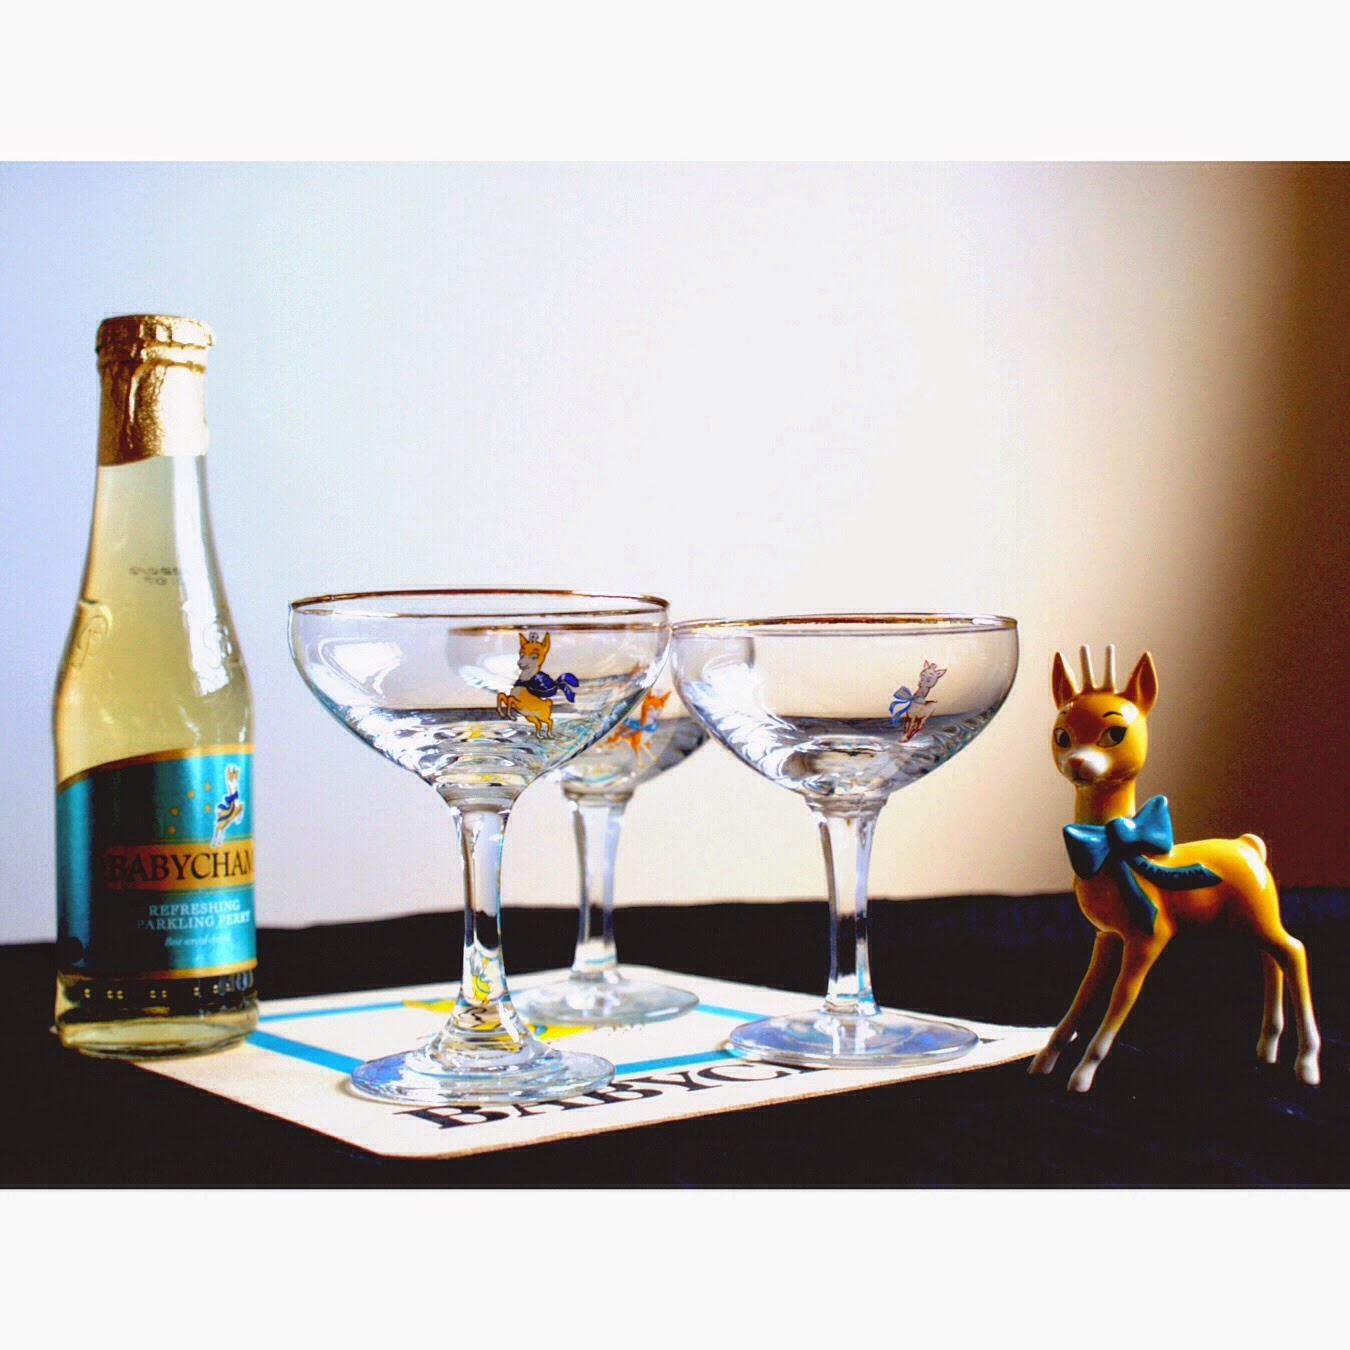 dating babycham glasses Shop for-and learn about-antique carnival glass antique carnival glass, or inexpensively made glassware treated to have an iridescent sheen, has captivated.